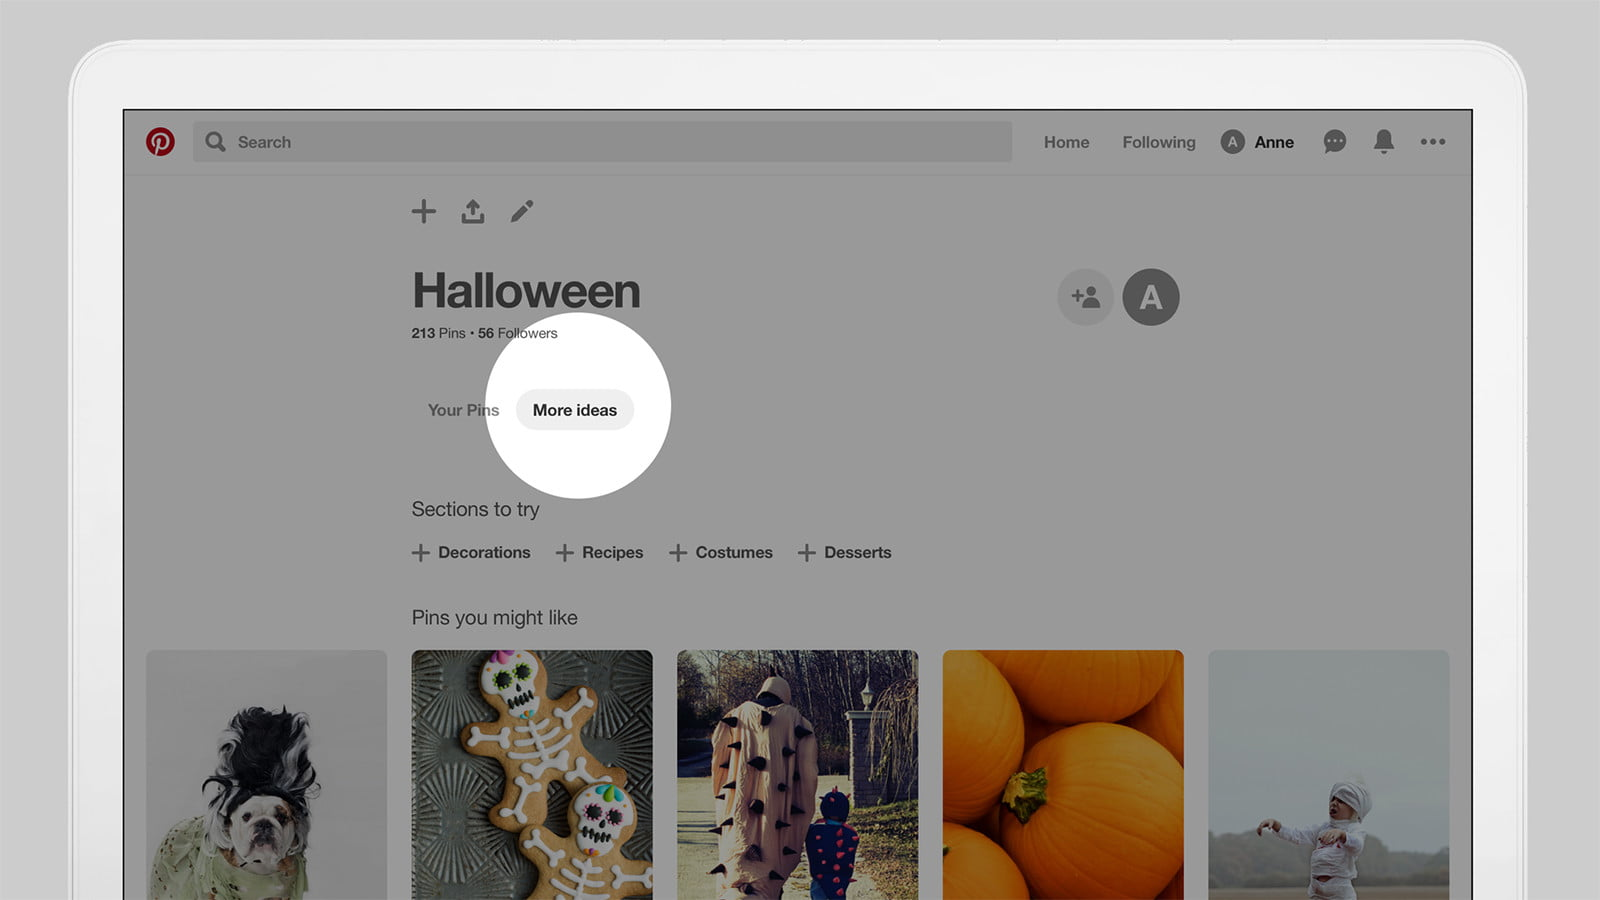 New Pinterest Tab Makes Suggestions For Your Boards